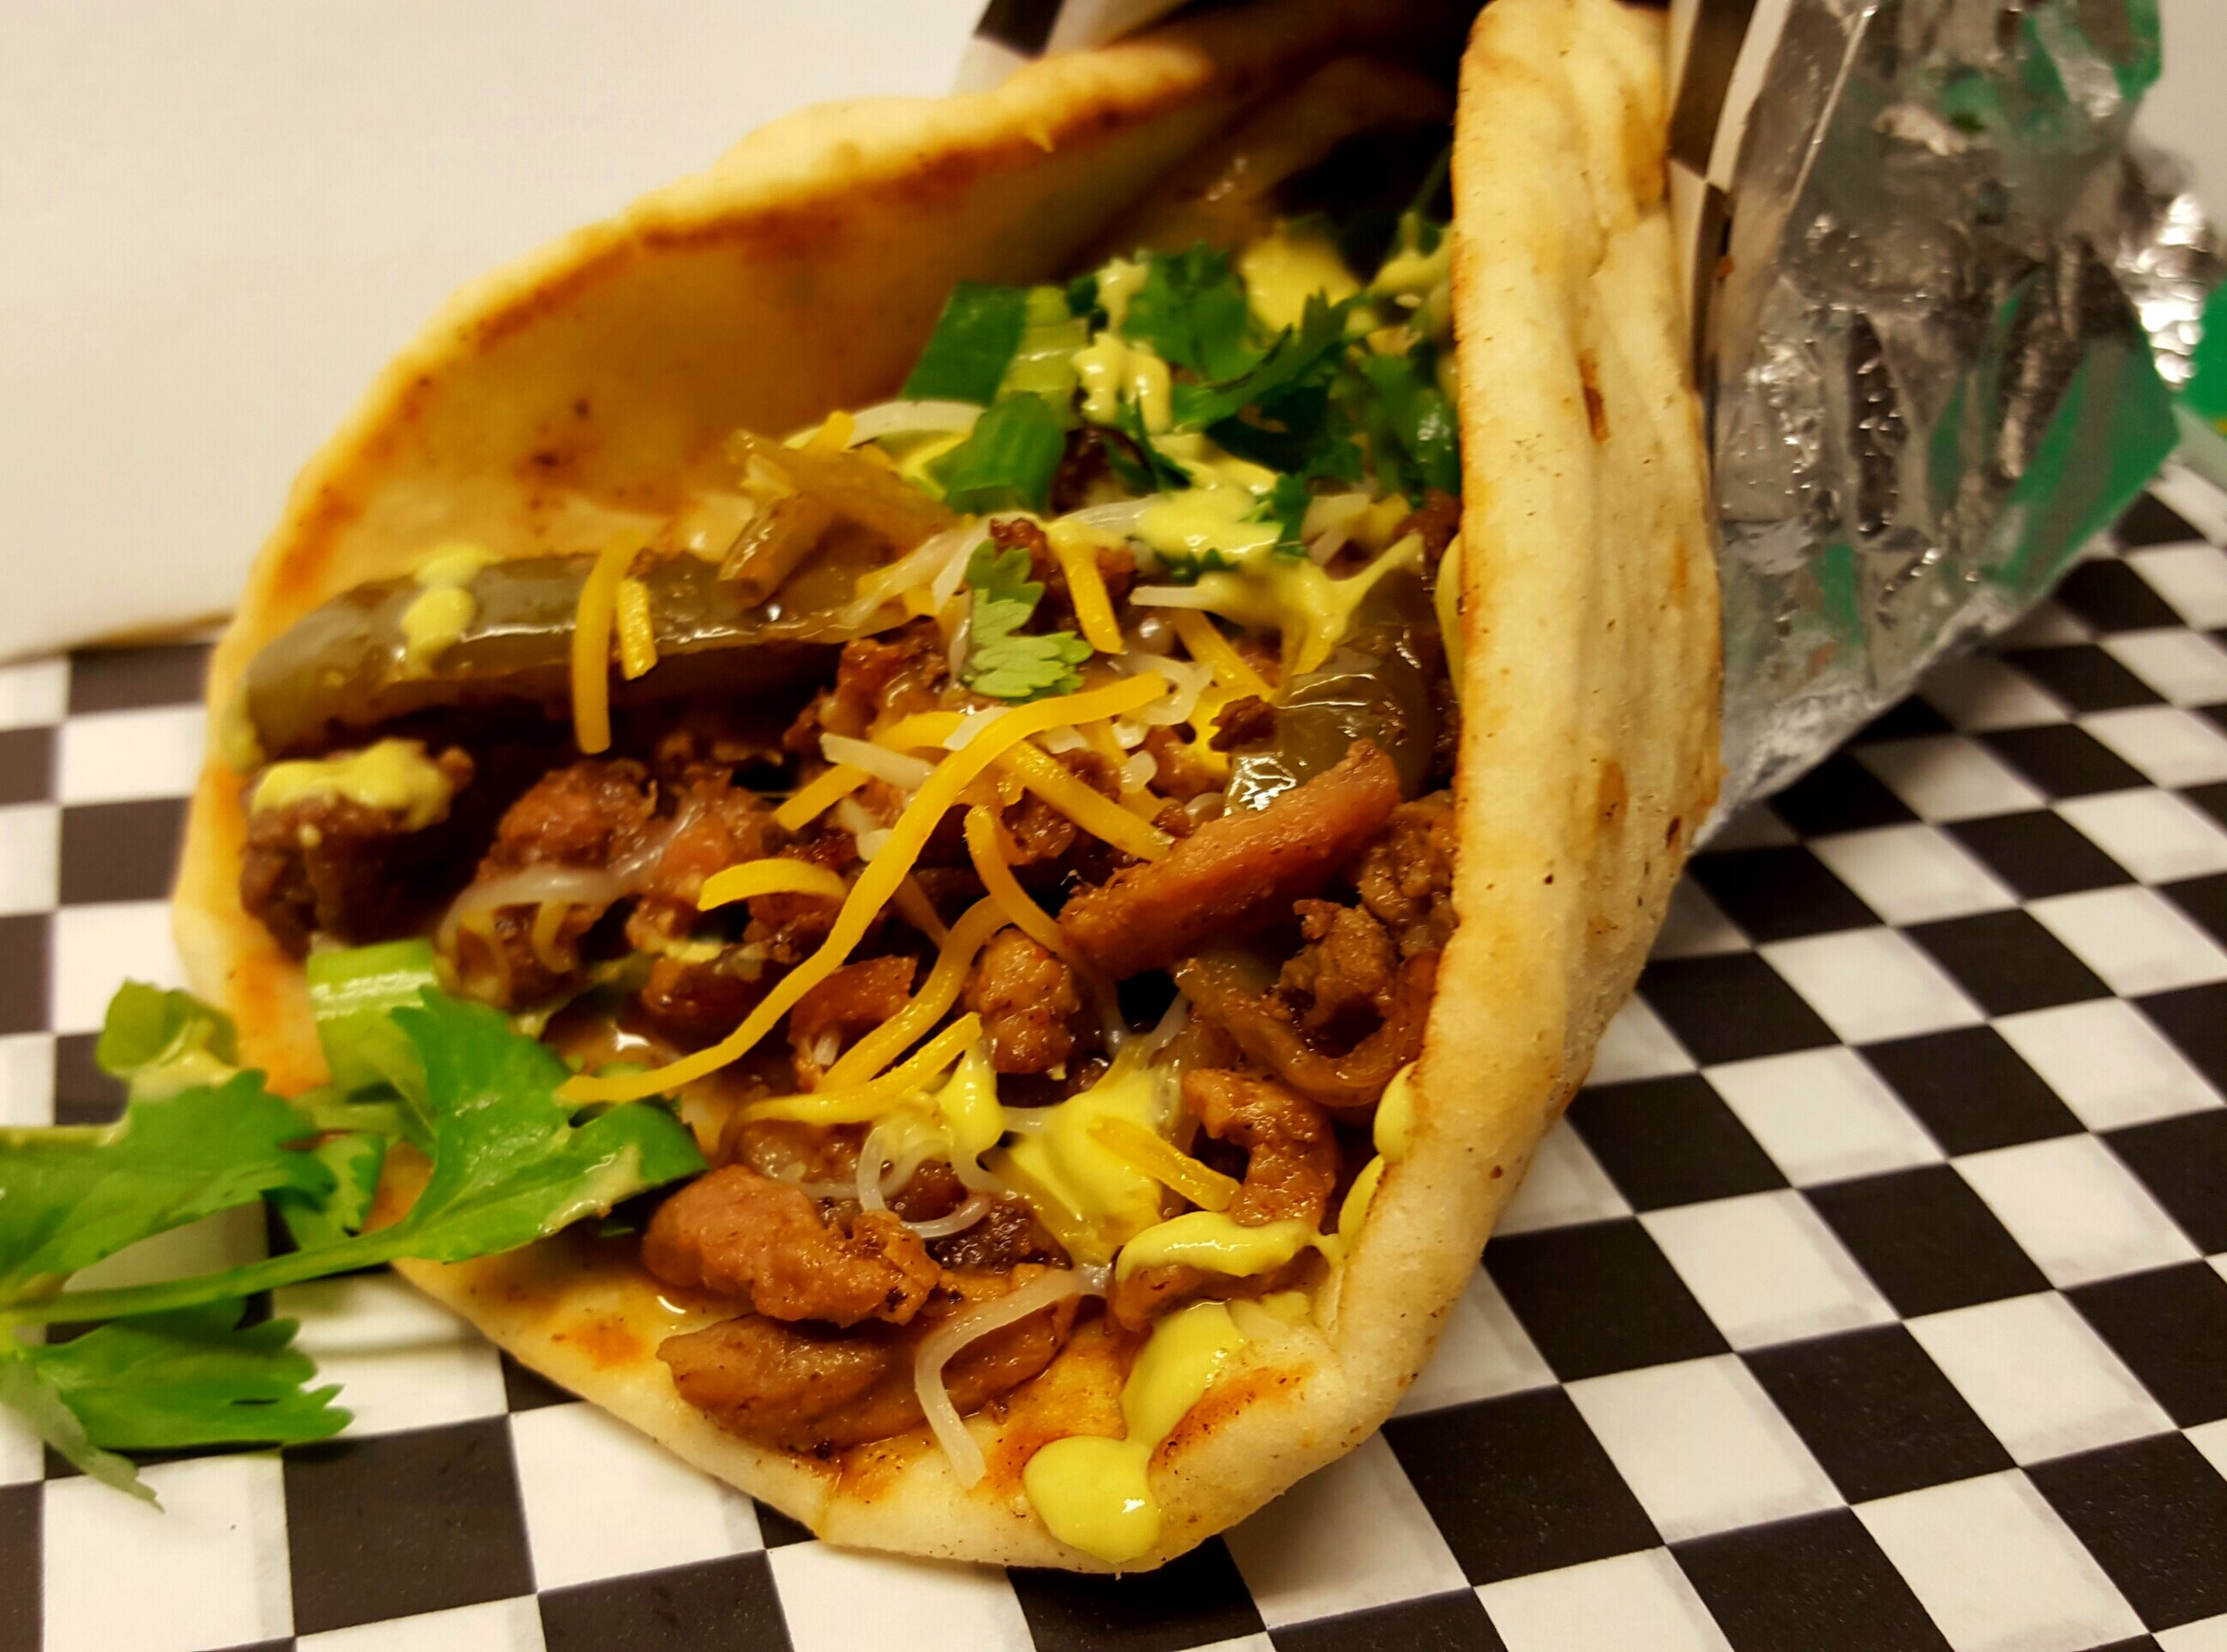 MEXICAN PITA: A soft pitta bread stuffed with   MEXICAN FRIES A bead of seasoned battered fries with melted homemade queso topped with Mexican beef and pork fajitas steak, grilled bell peppers and onions, cheddar and monterey cheese, green onions, cilantro and o    ur mouth watering Mexican hot green salsa.